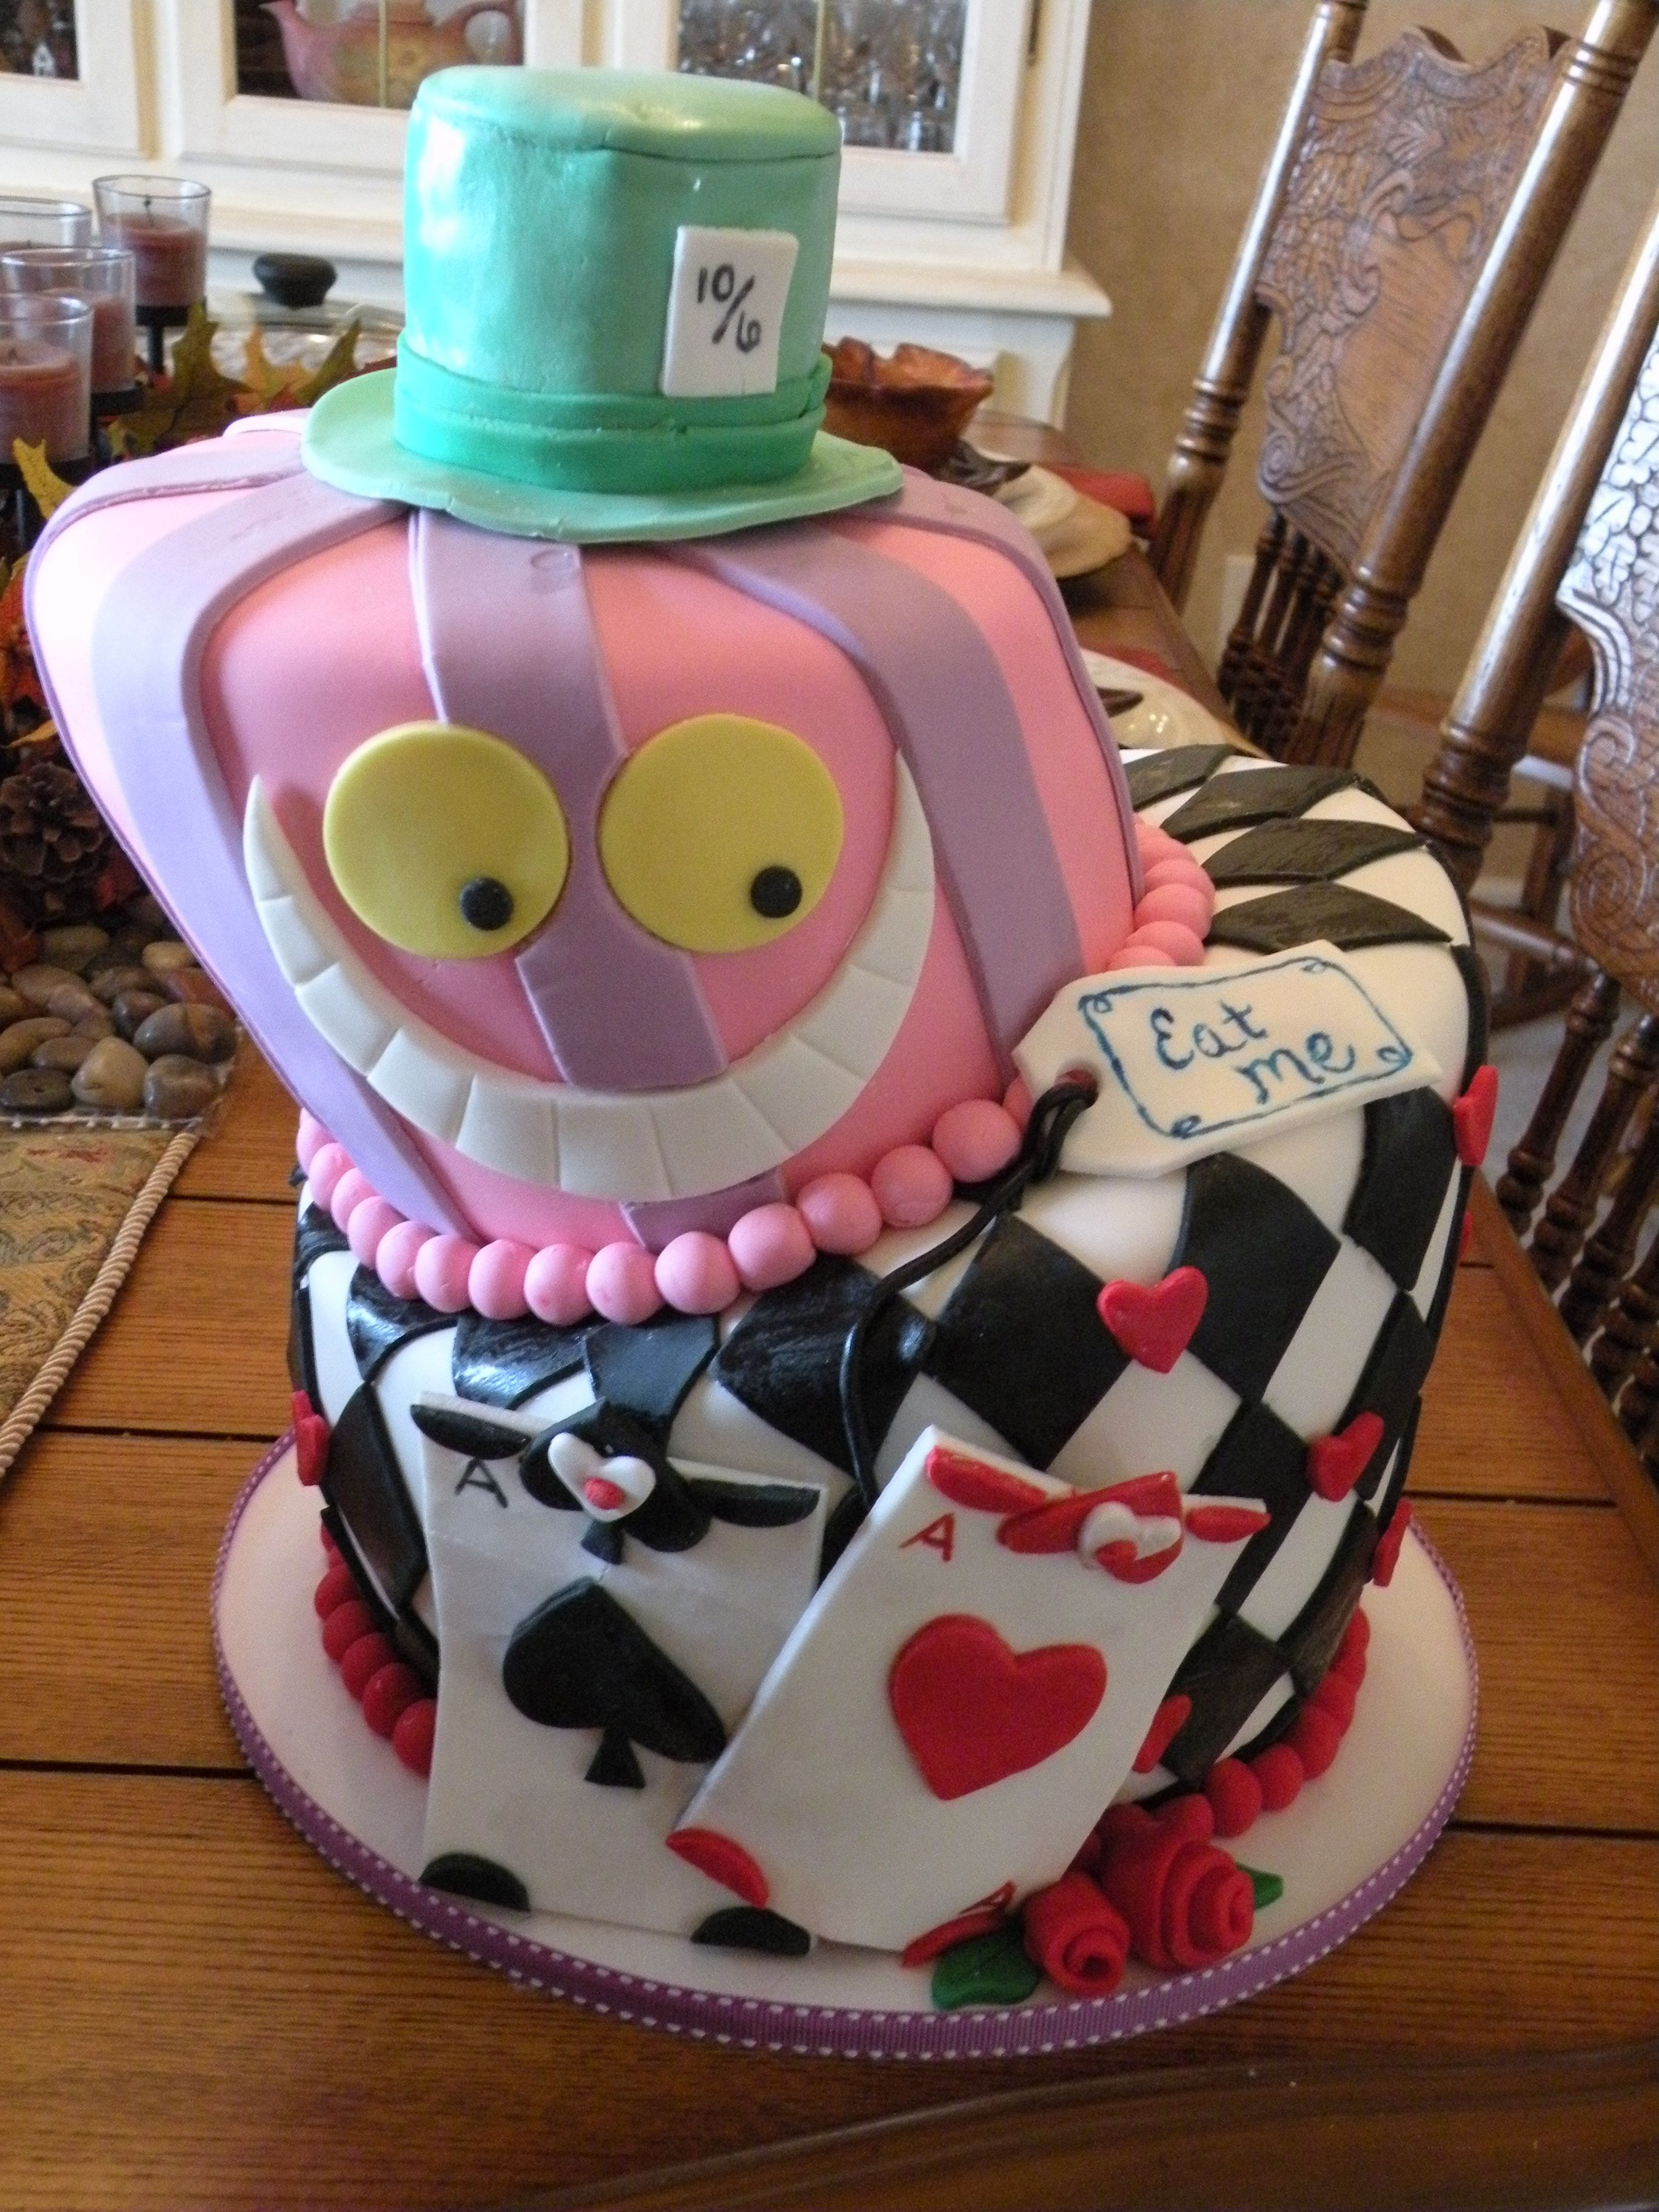 Alice In Wonderland Cake Like The Concepts For Each Layer But Seriously Hate Crooked Cakes